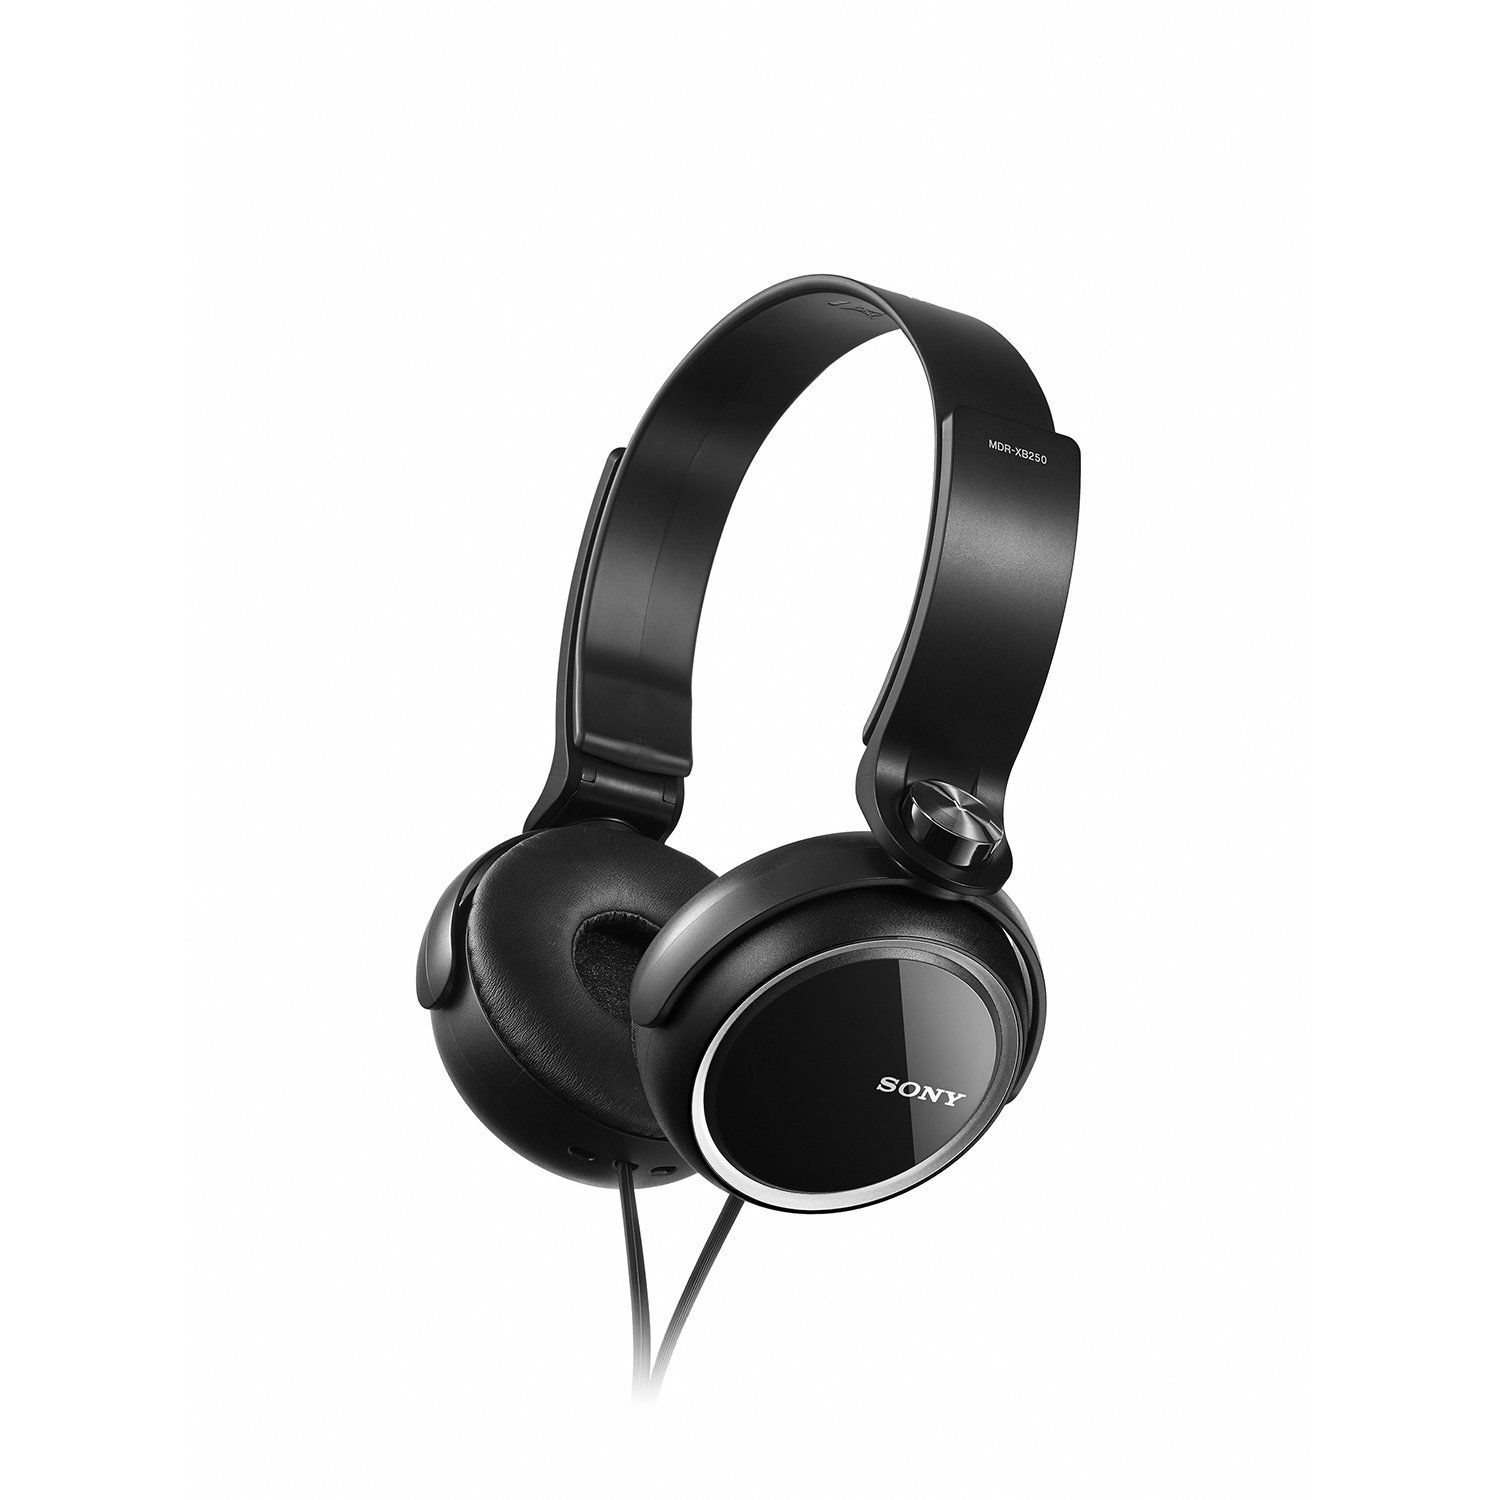 a579d2351f5 Sony Extra Bass MDR-XB250 On-Ear Headphones: Amazon.in: Electronics ...